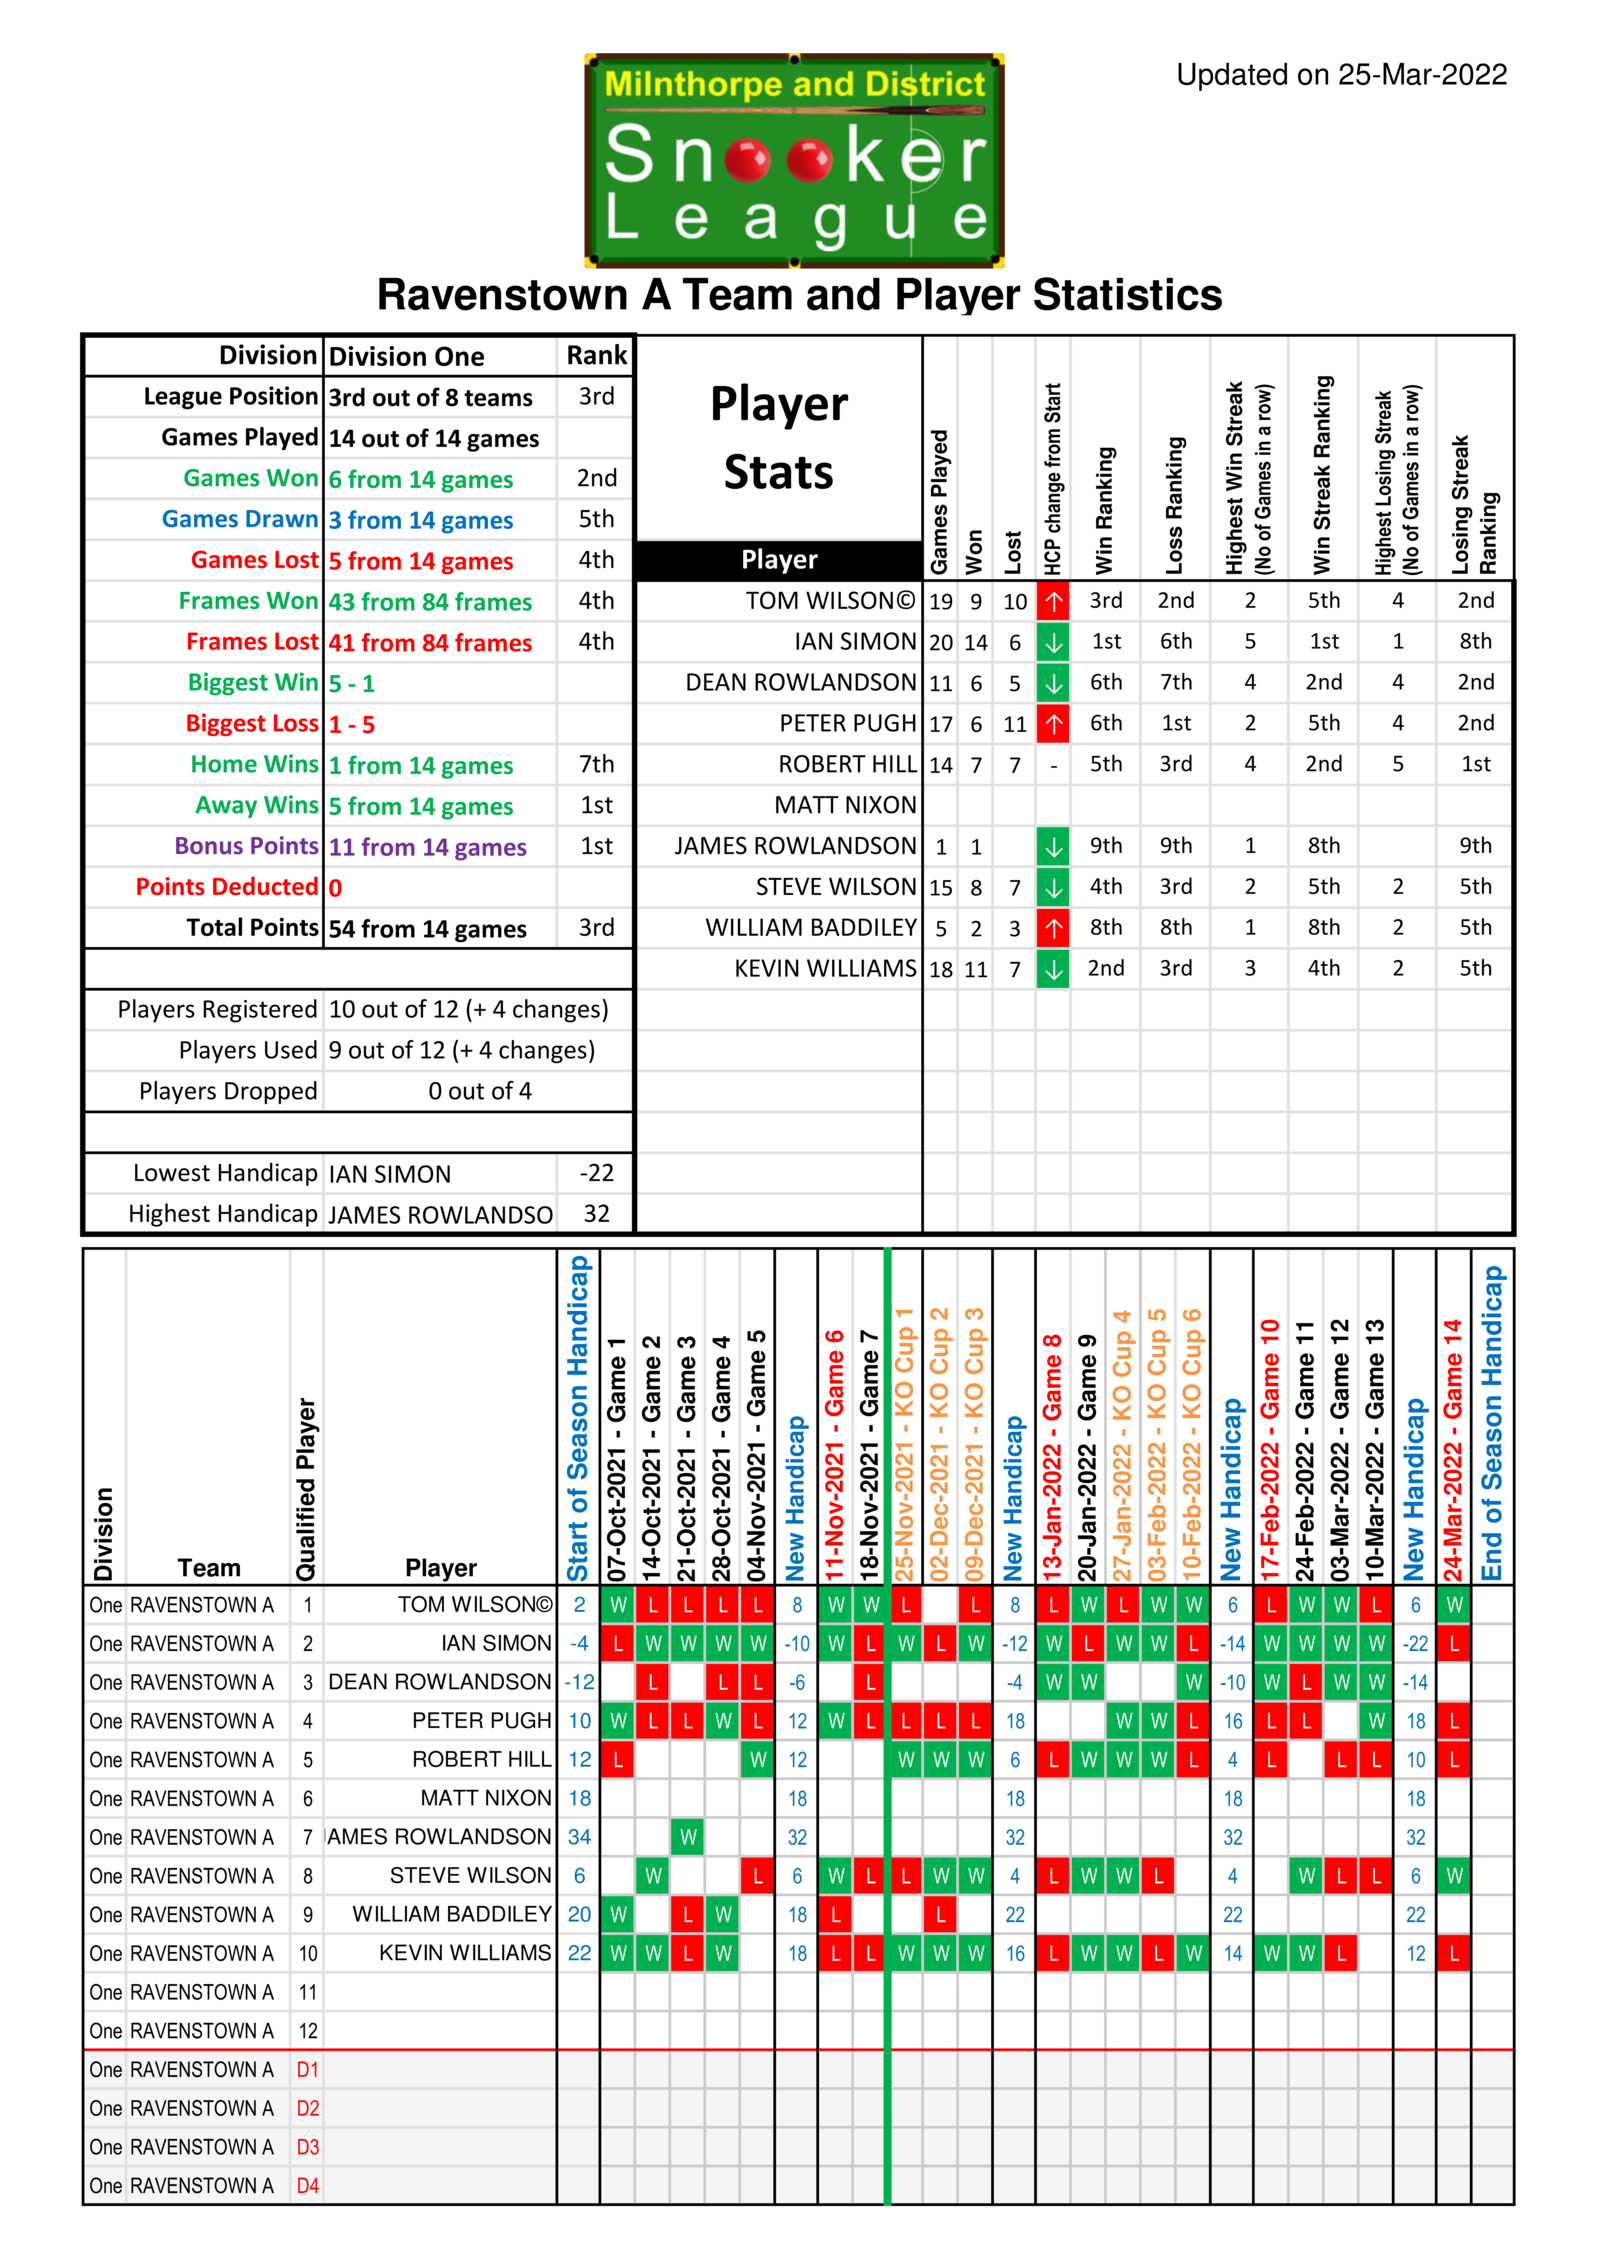 Team Stats for Ravenstown A